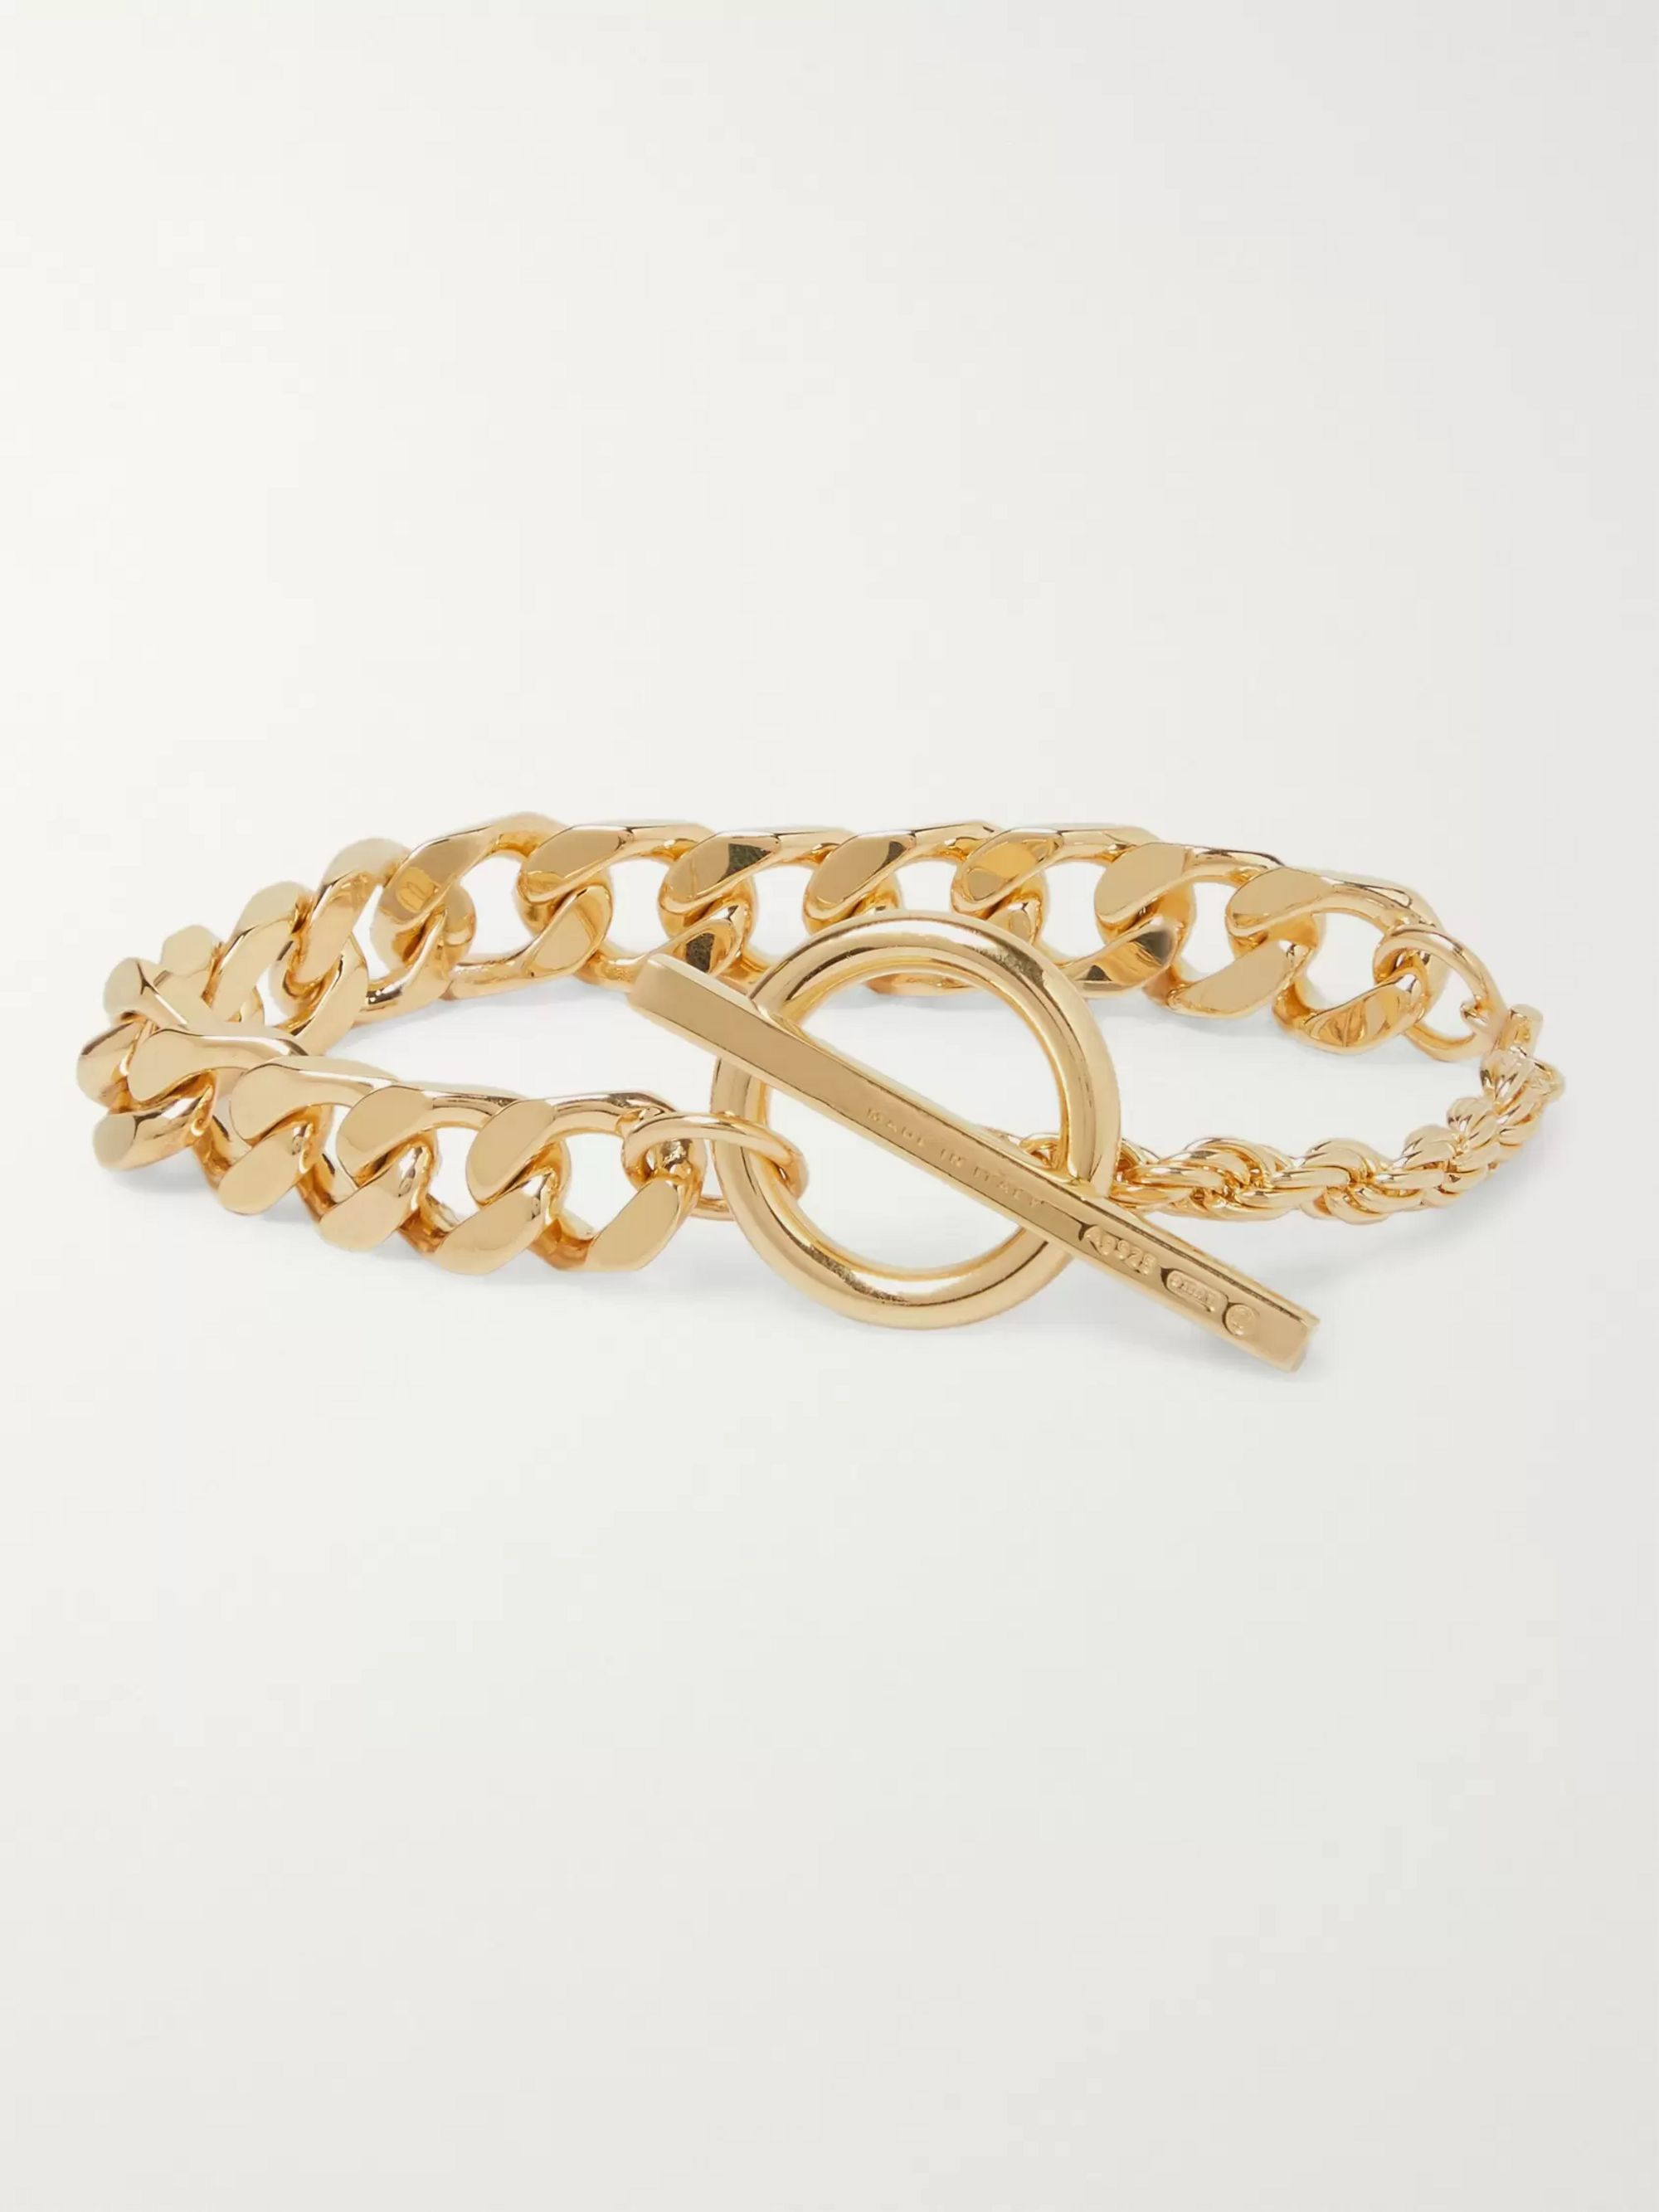 Bottega Veneta Gold-Plated Chain Bracelet